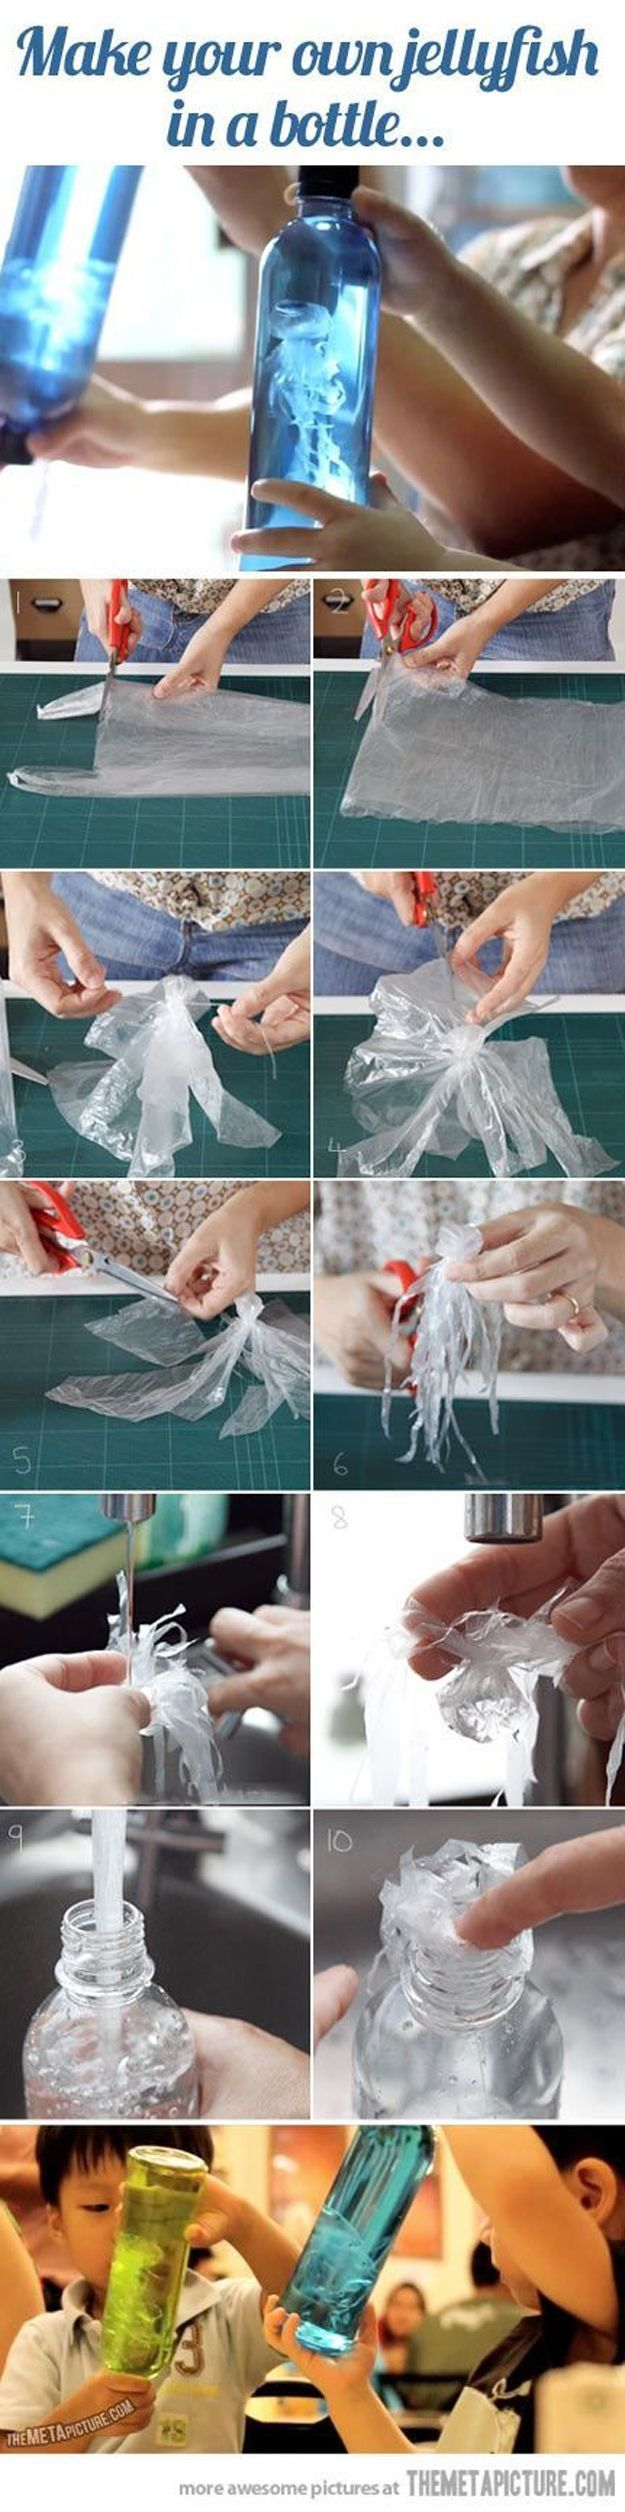 Jelly Fish in a Bottle Project | Cool and Simple Craft Projects for Kids by DIY Ready at www.diyready.com/diy-kids-crafts-you-can-make-in-under-an-hour/